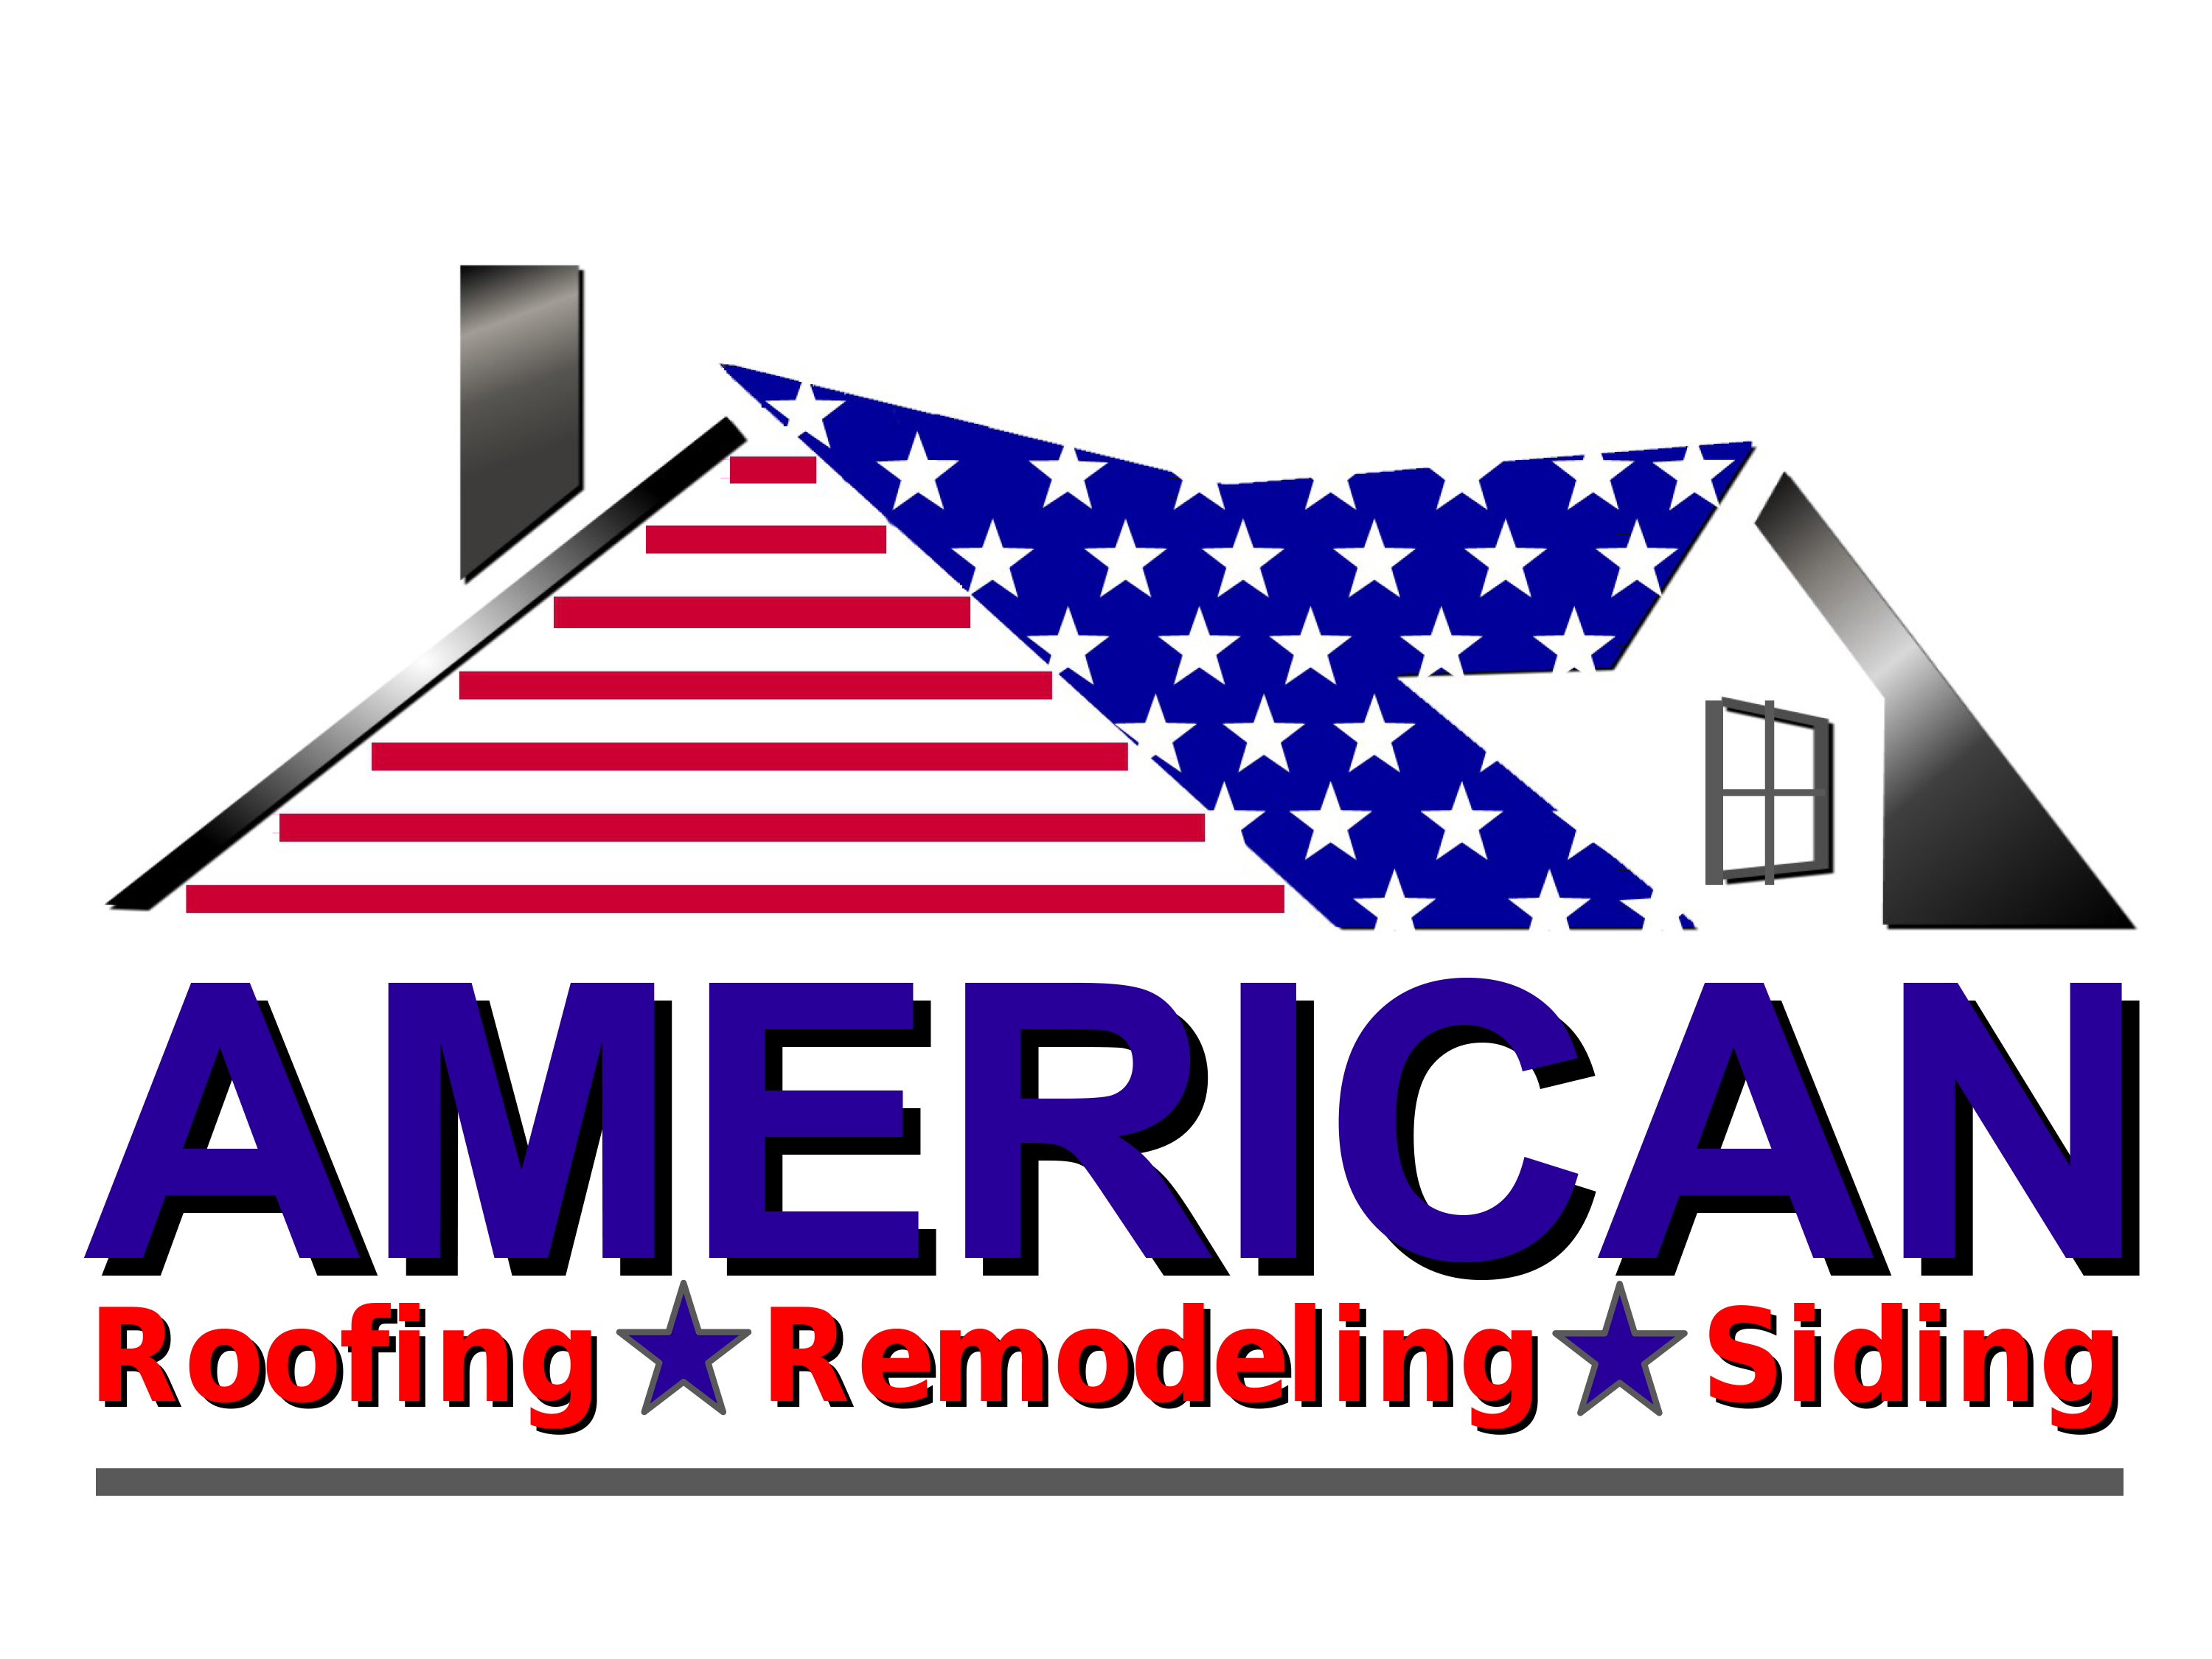 American roofing and remodeling inc in lansdale pa 19446 for American remodeling